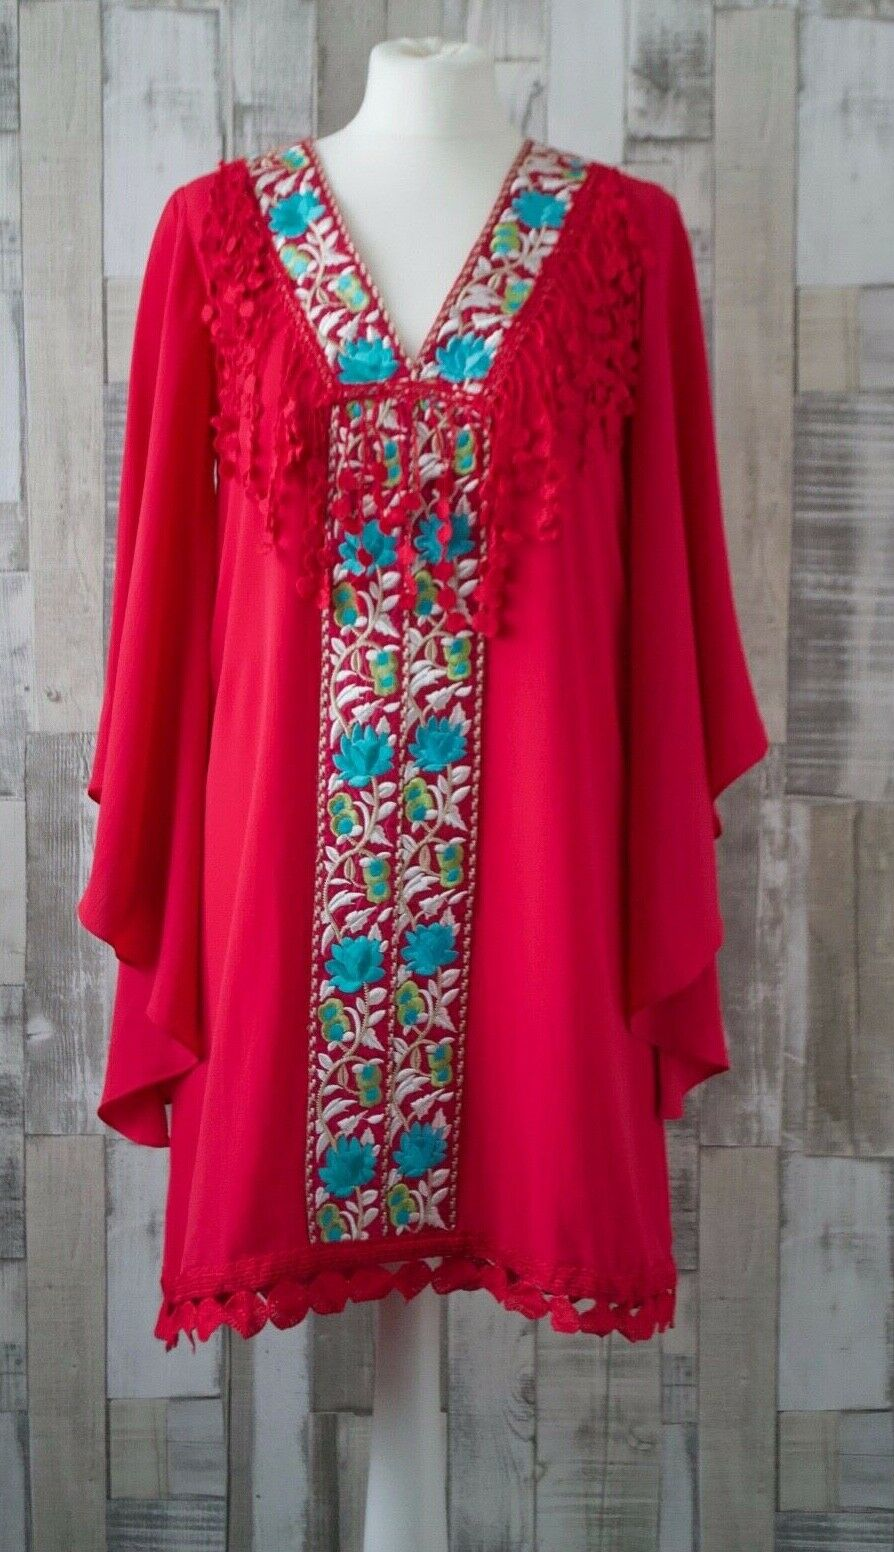 Valeria Derbais Pink Embroidered Fringed Shift Dress Boho Gypsy Style Size Small